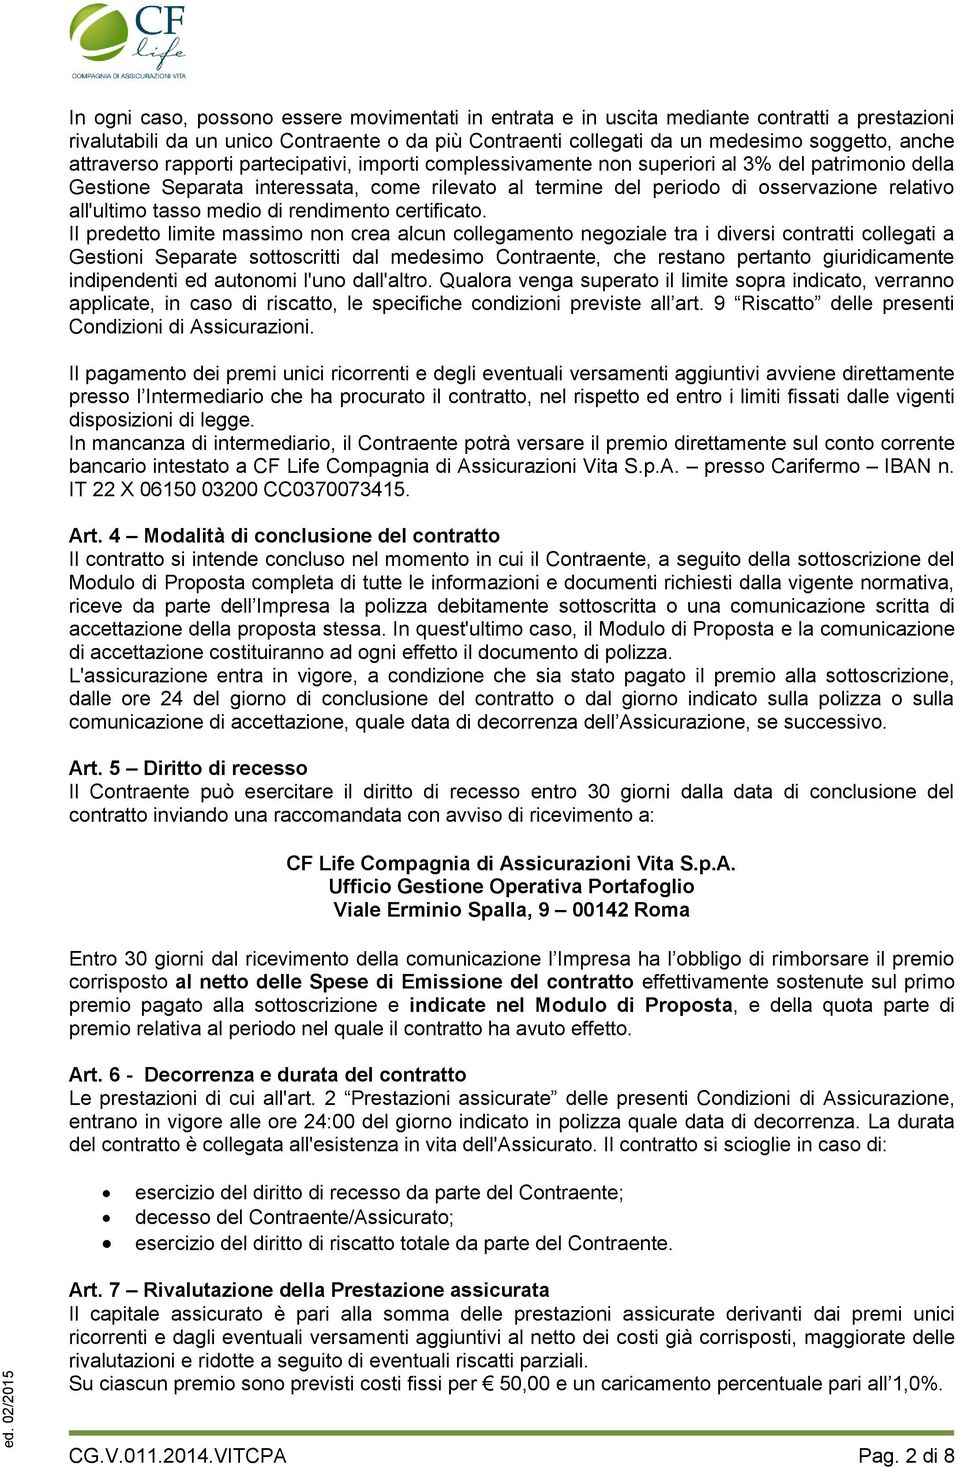 all'ultimo tasso medio di rendimento certificato.